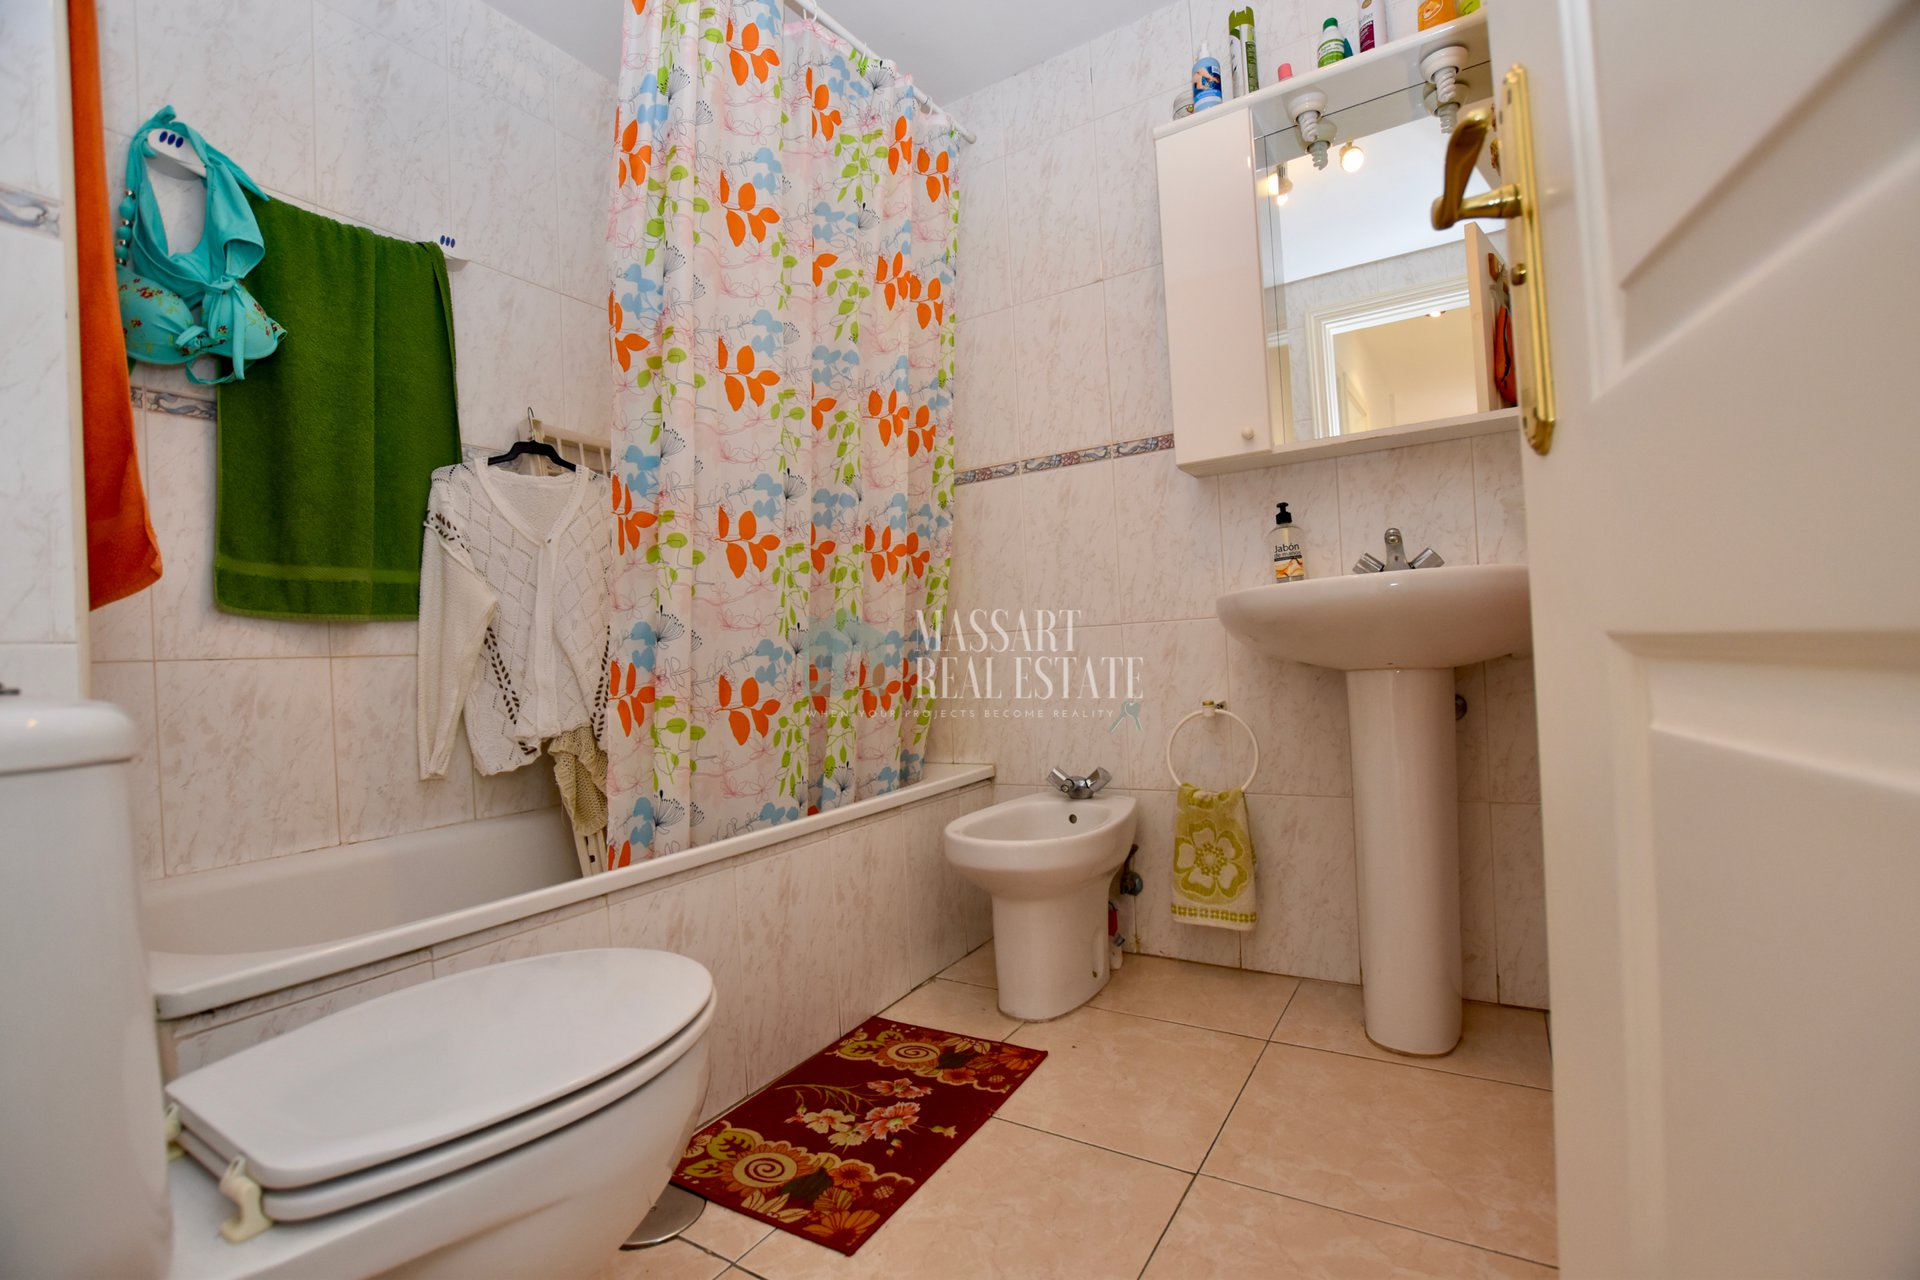 For sale in Plaza Cesar Manrique, bright 78m2 apartment consisting of two bedrooms and a bathroom with bathtub.